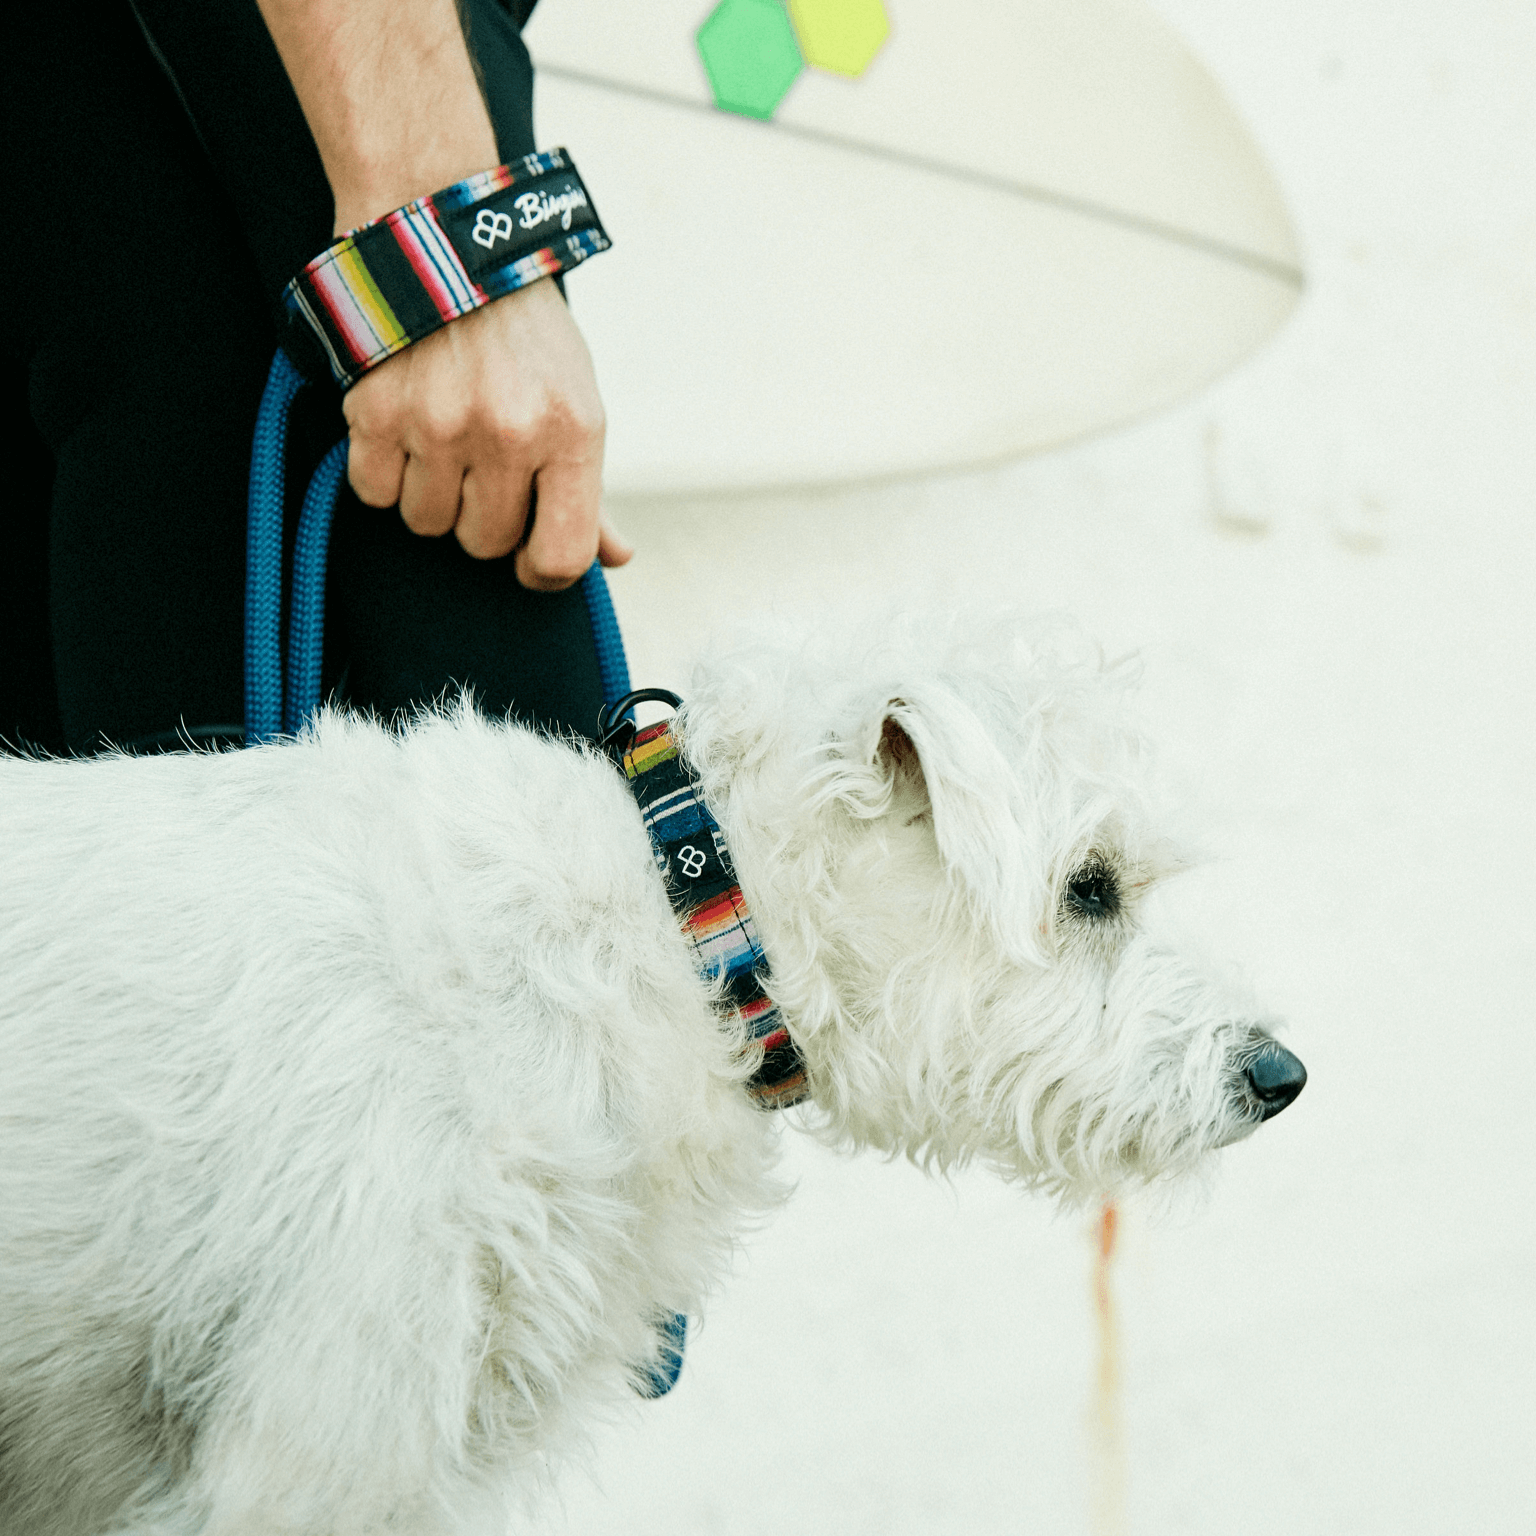 Surfer's Jack Russell Terrier wearing the Bingin Dog 'Los Amigos' waterproof dog collar and matching surf-style rope leash set.